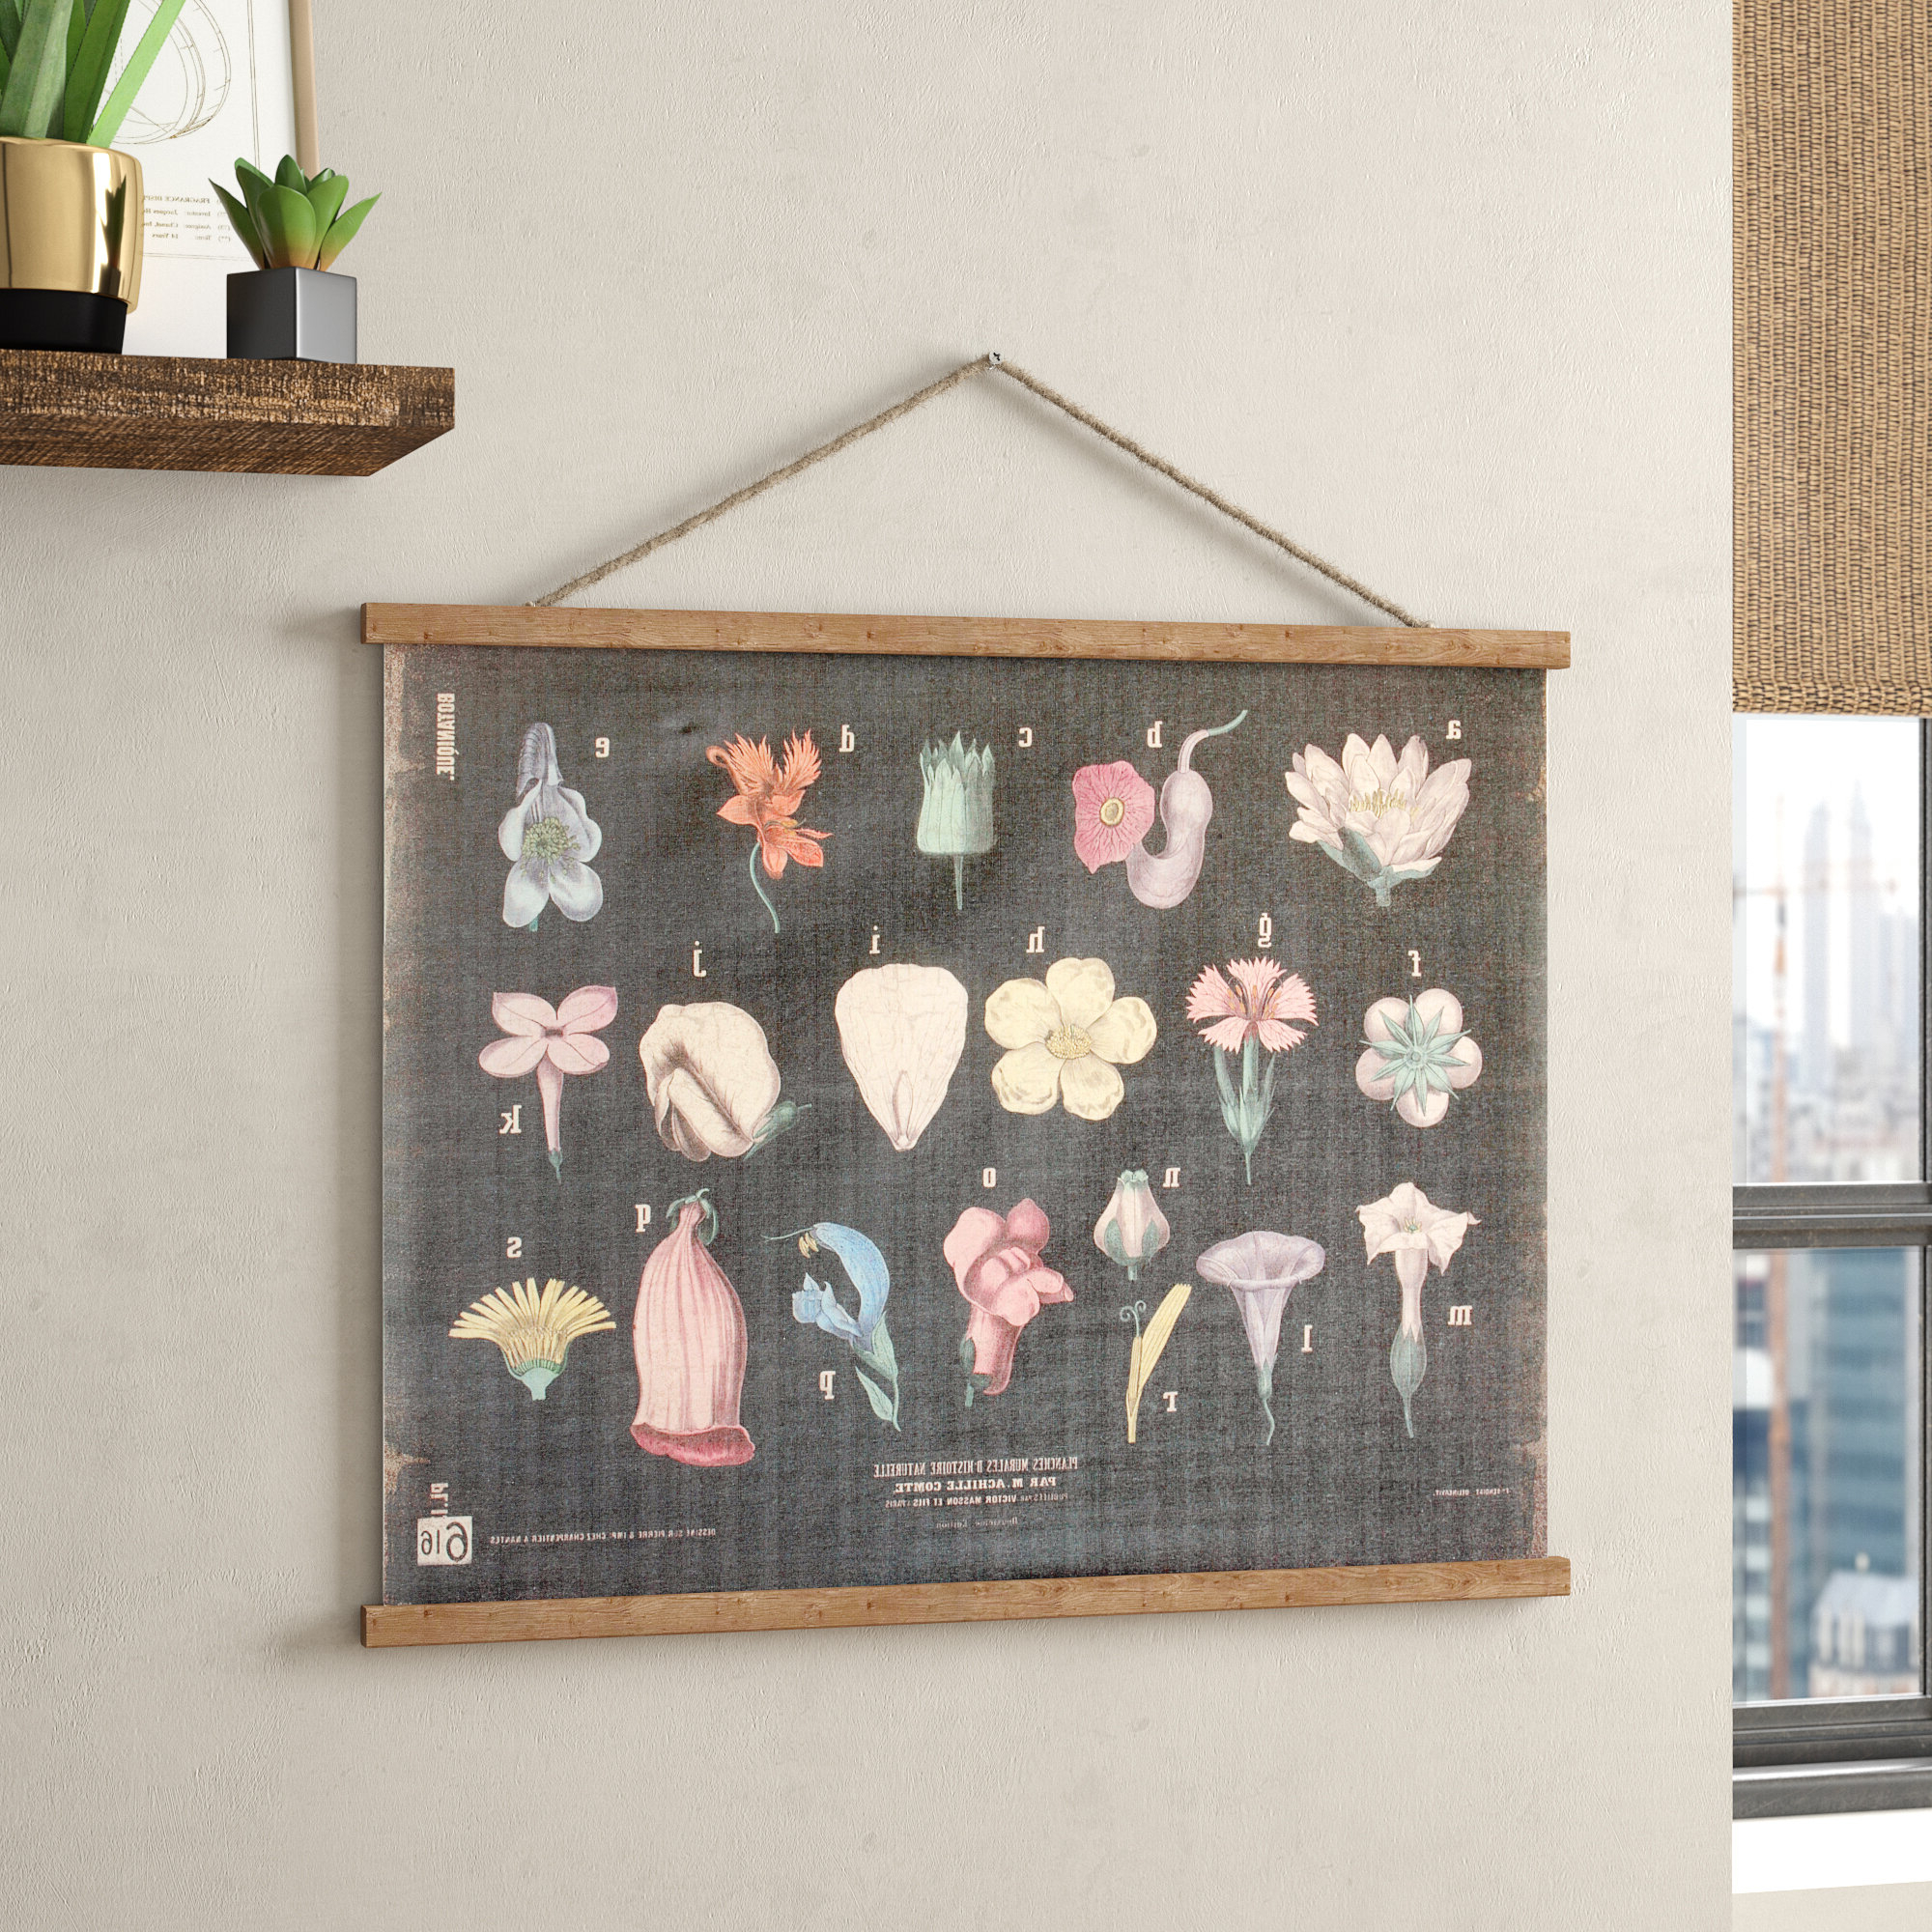 2019 Blended Fabric Hohl Wall Hanging With Rod Regarding Blended Fabric Wall Hangings With Rod Included (View 3 of 20)